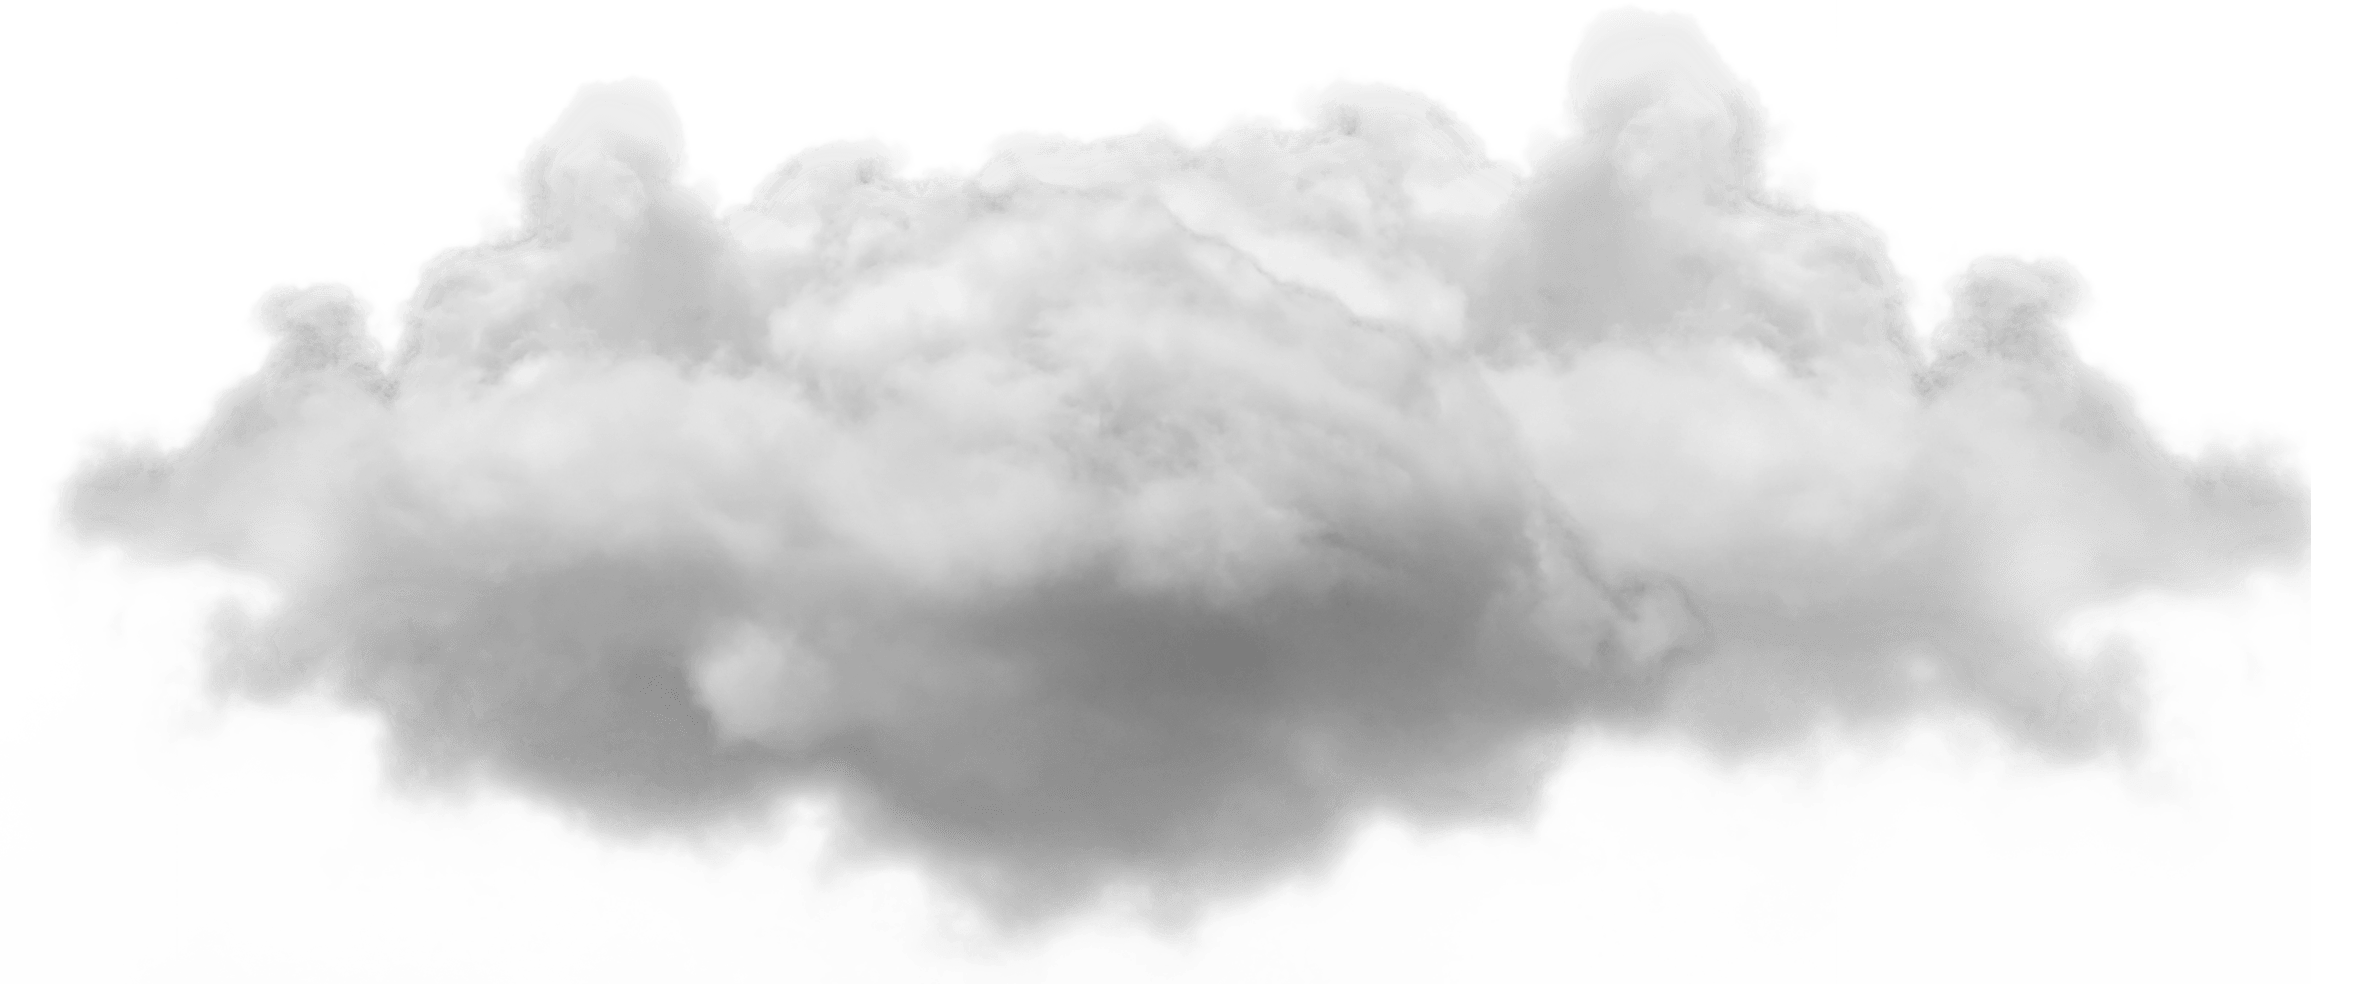 Clouds background png. Small single cloud image